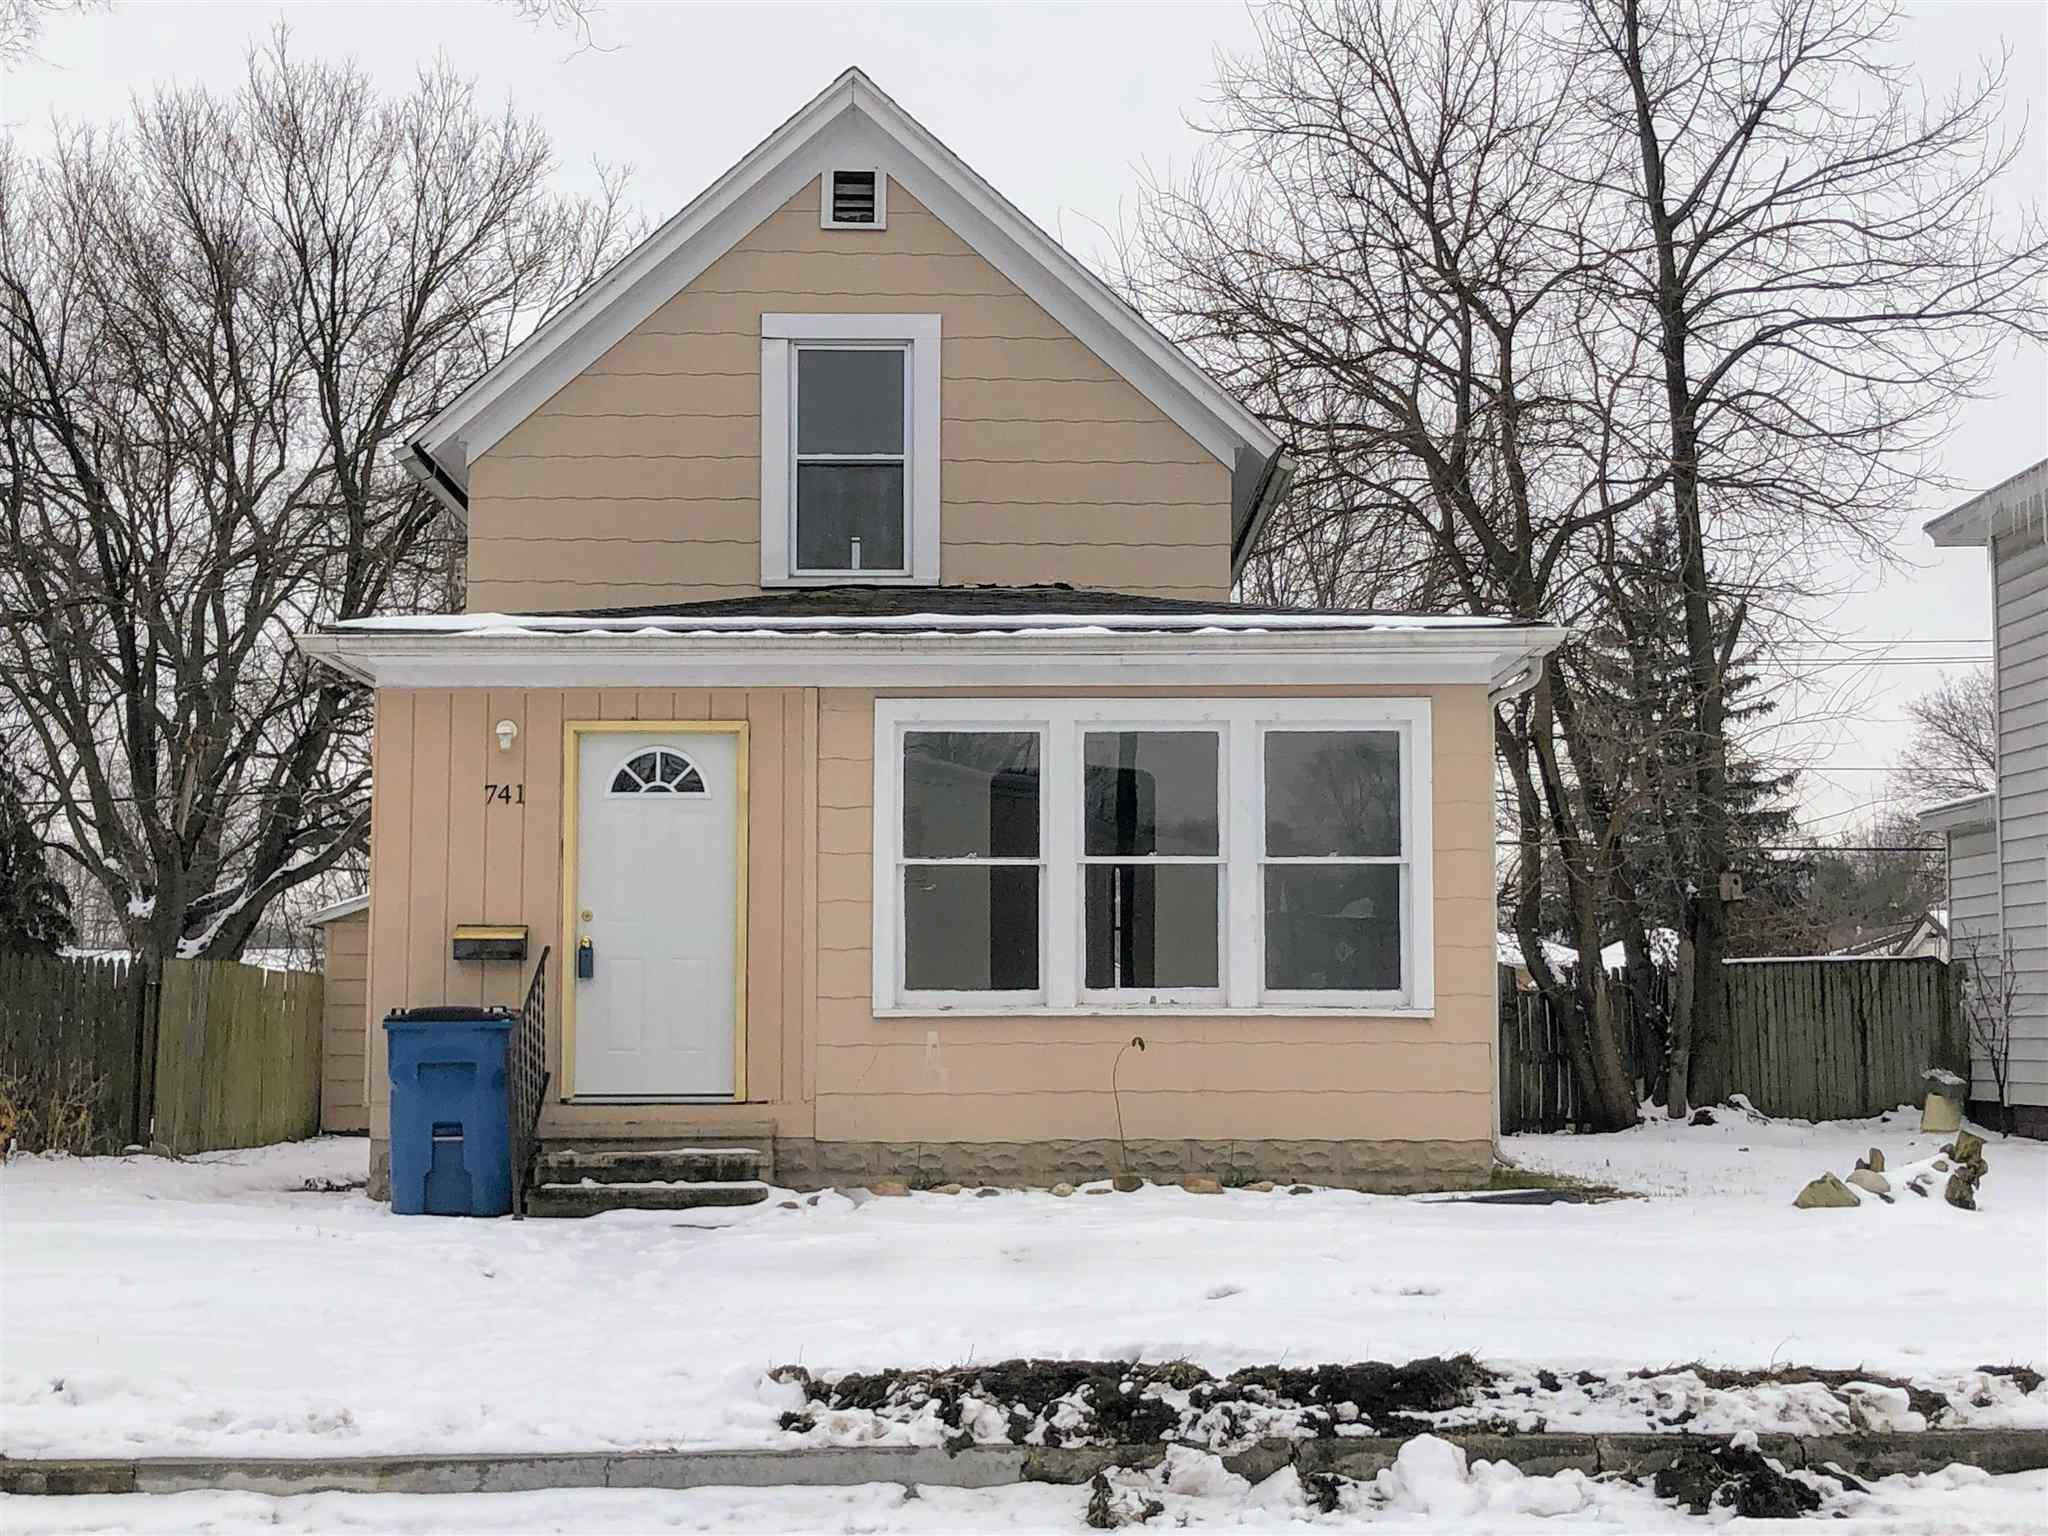 741 E 5th Mishawaka, IN 46544